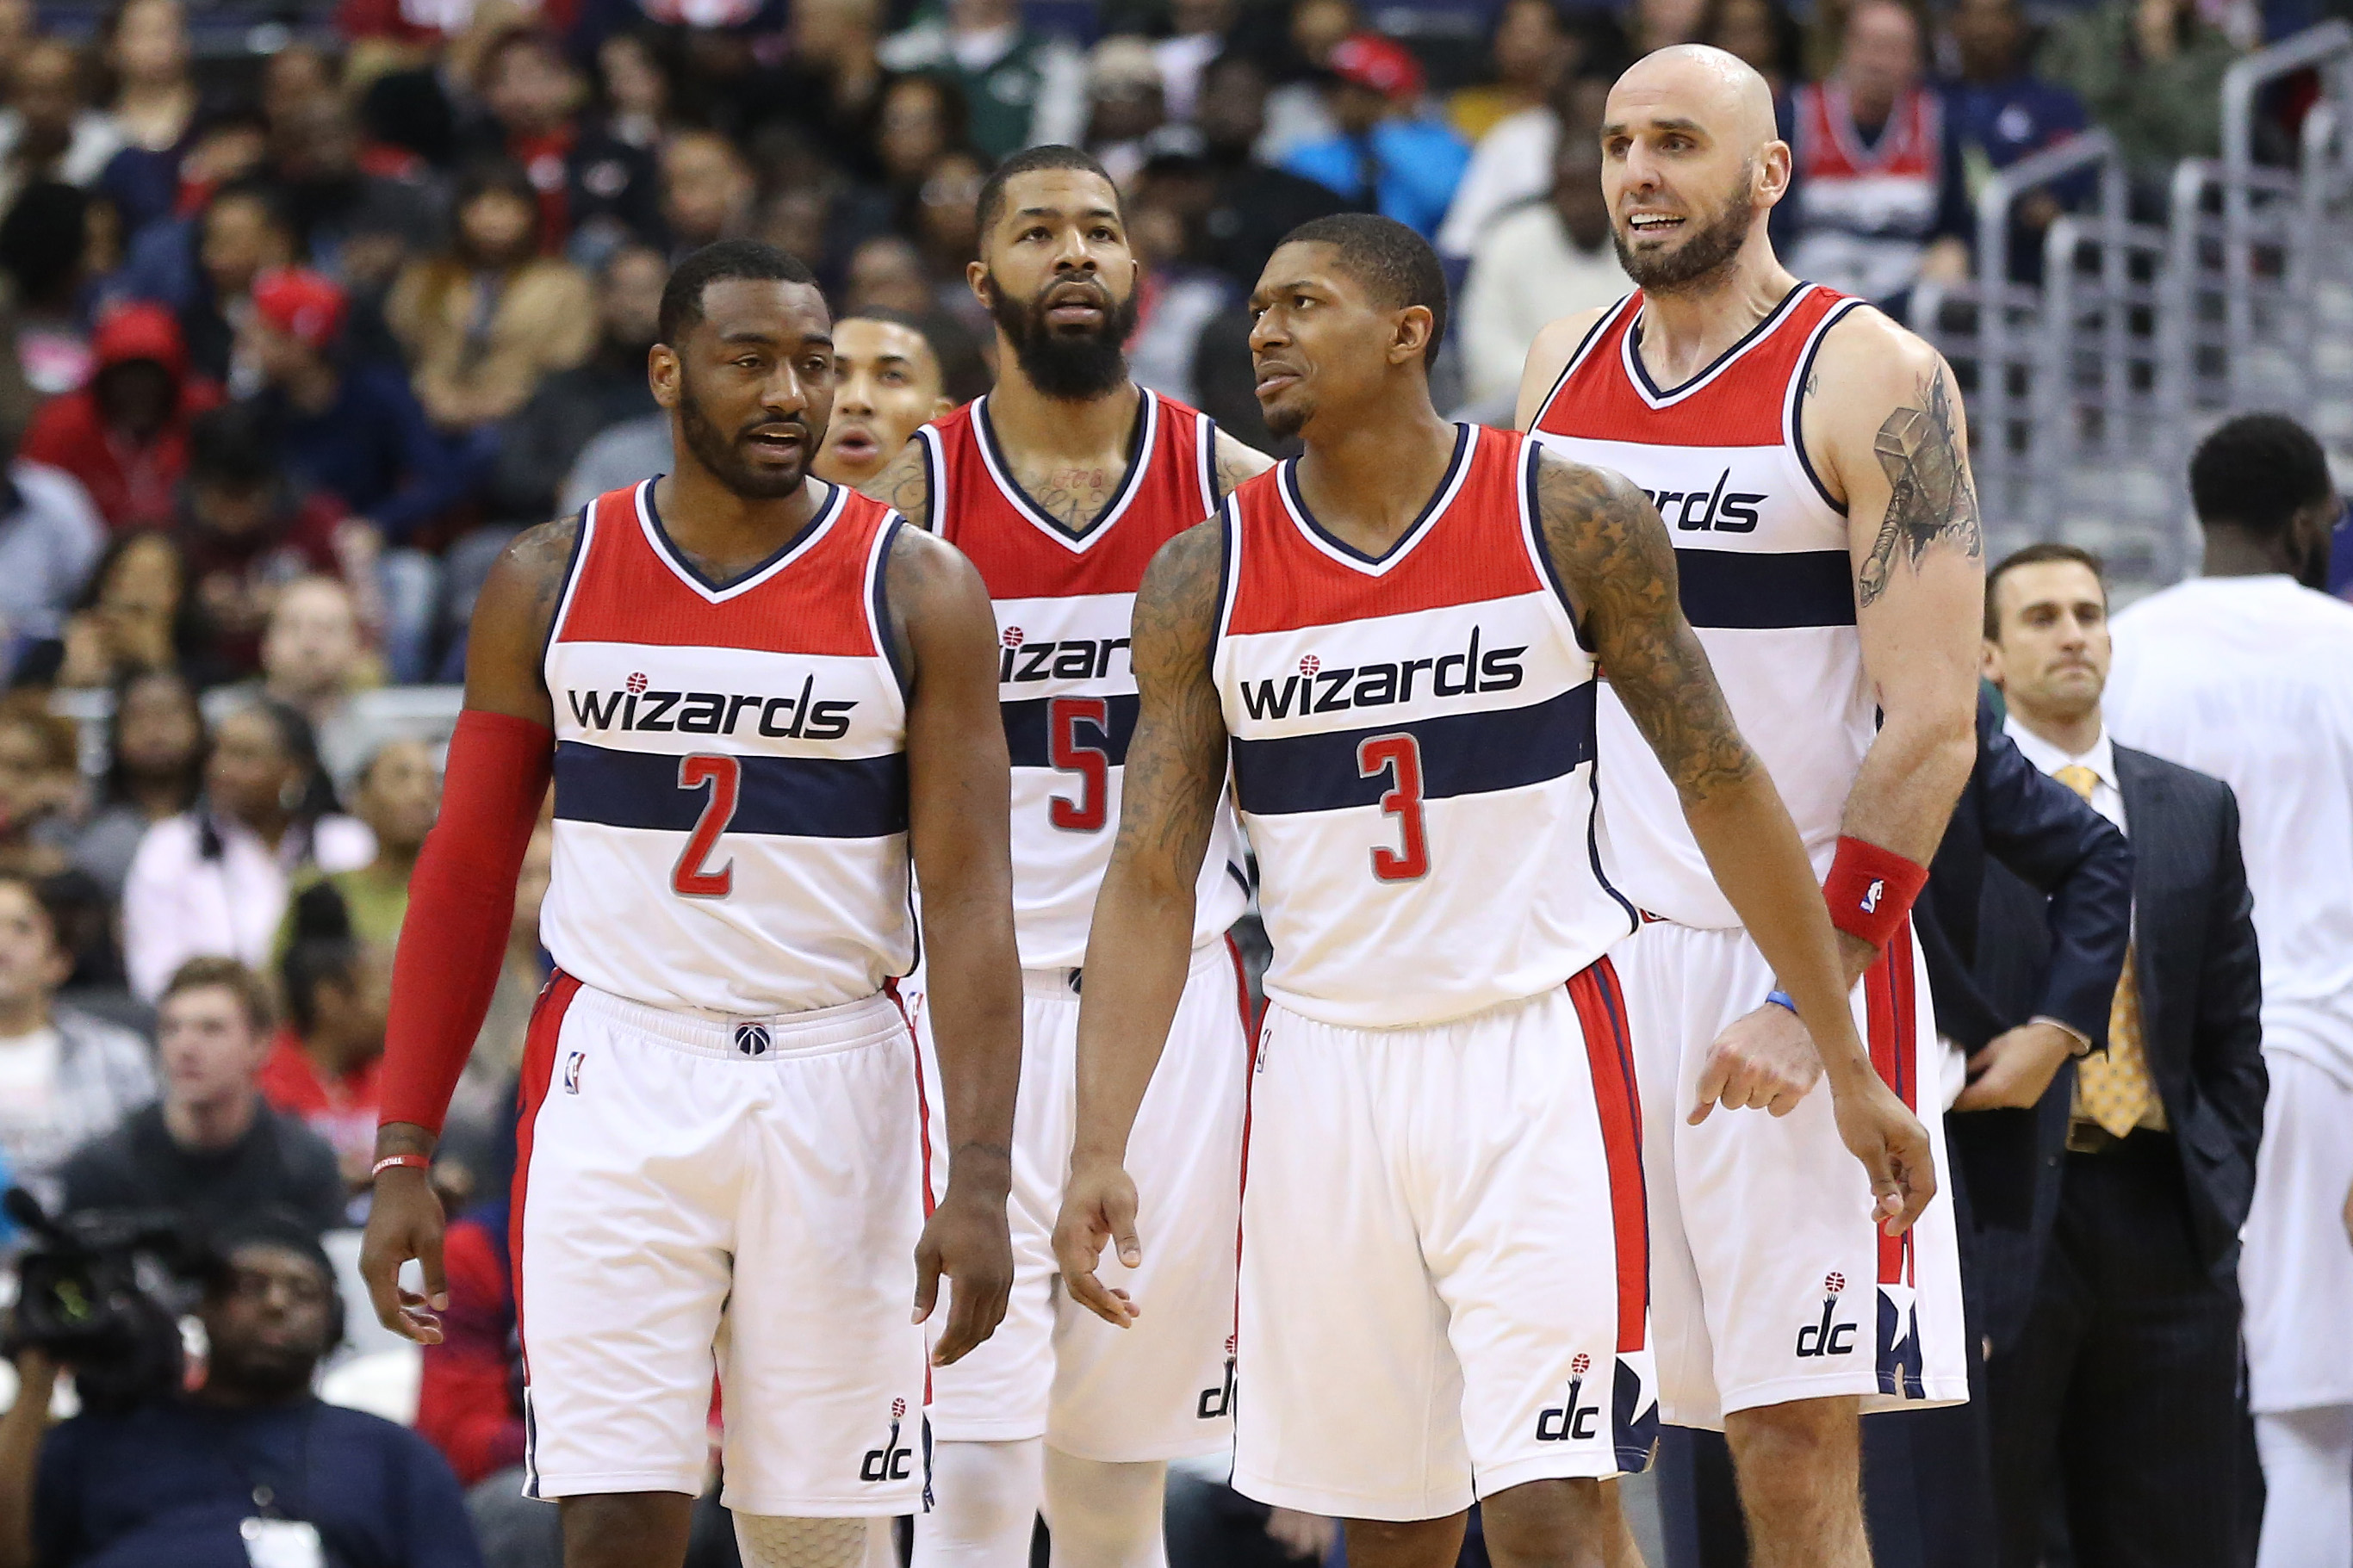 Washington-Wizards-starters-home-uni-John-Wall-Bradley-Beal-Marcin-Gortat